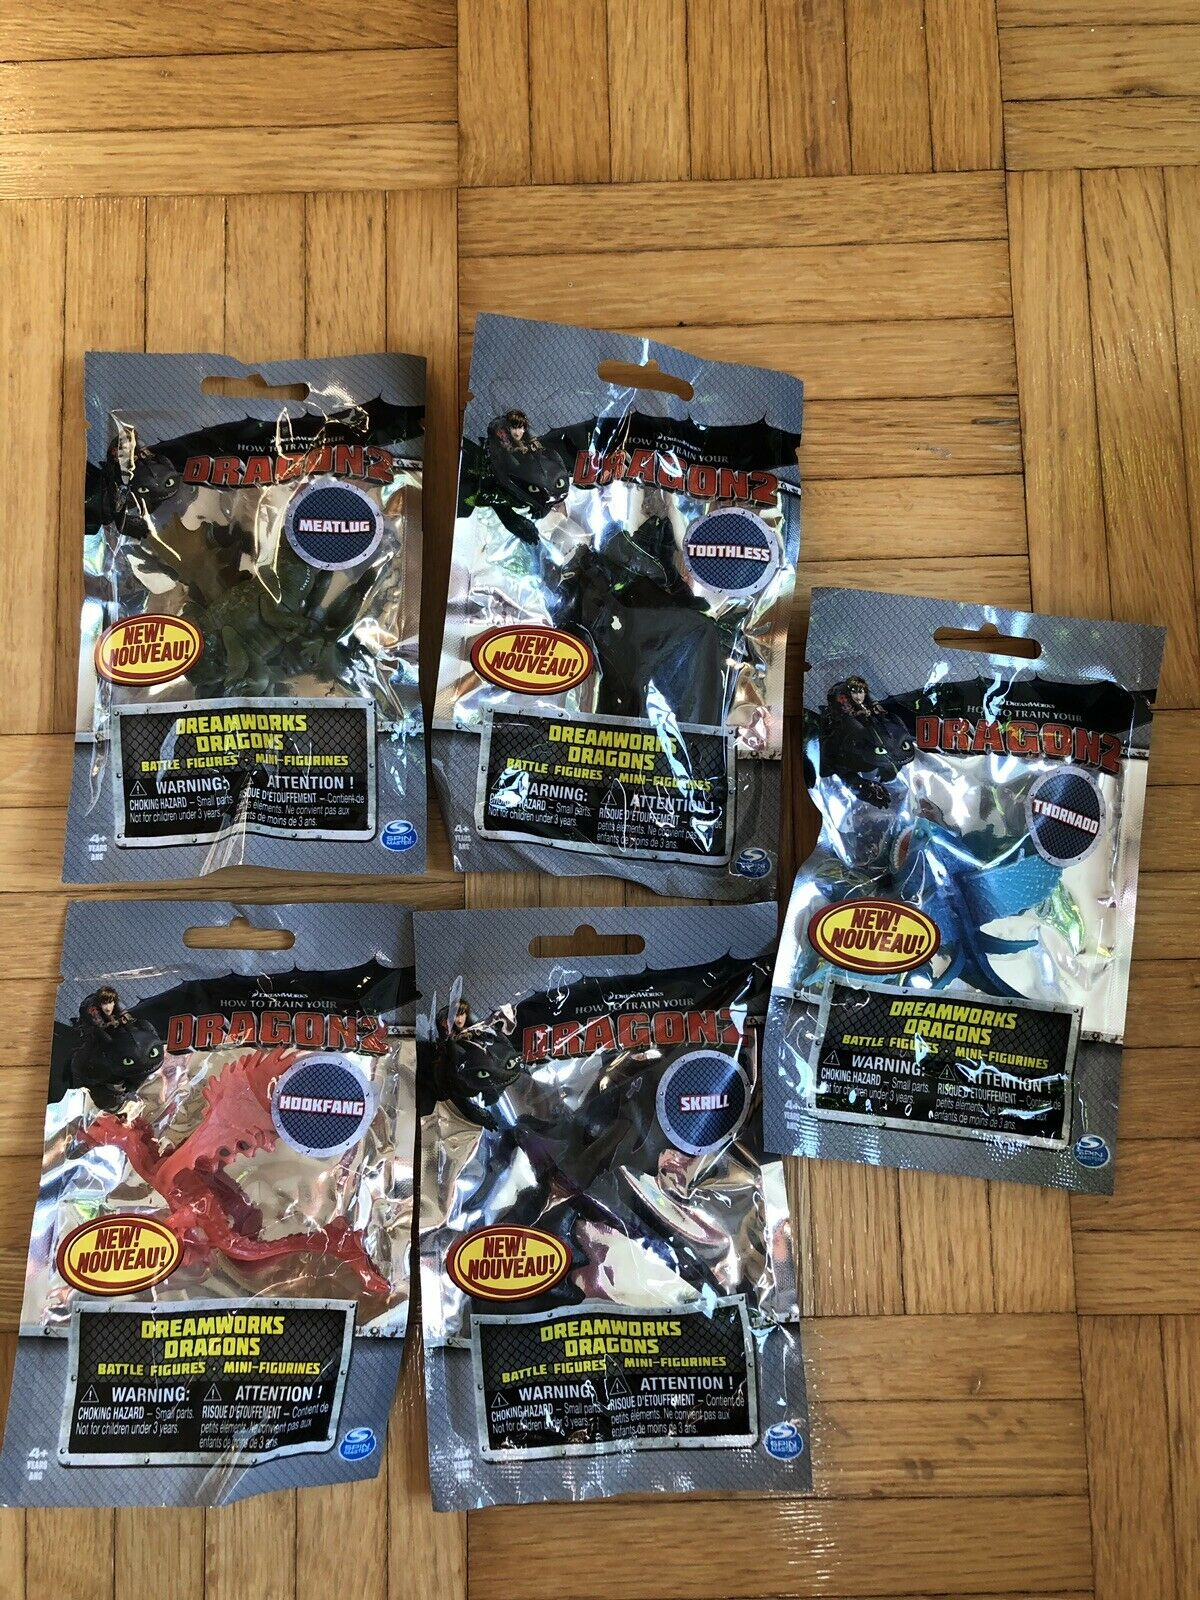 NEW Sealed How To Train Your Dragons 2 Battle Dragons Mini Figures Set Of 5 Bags